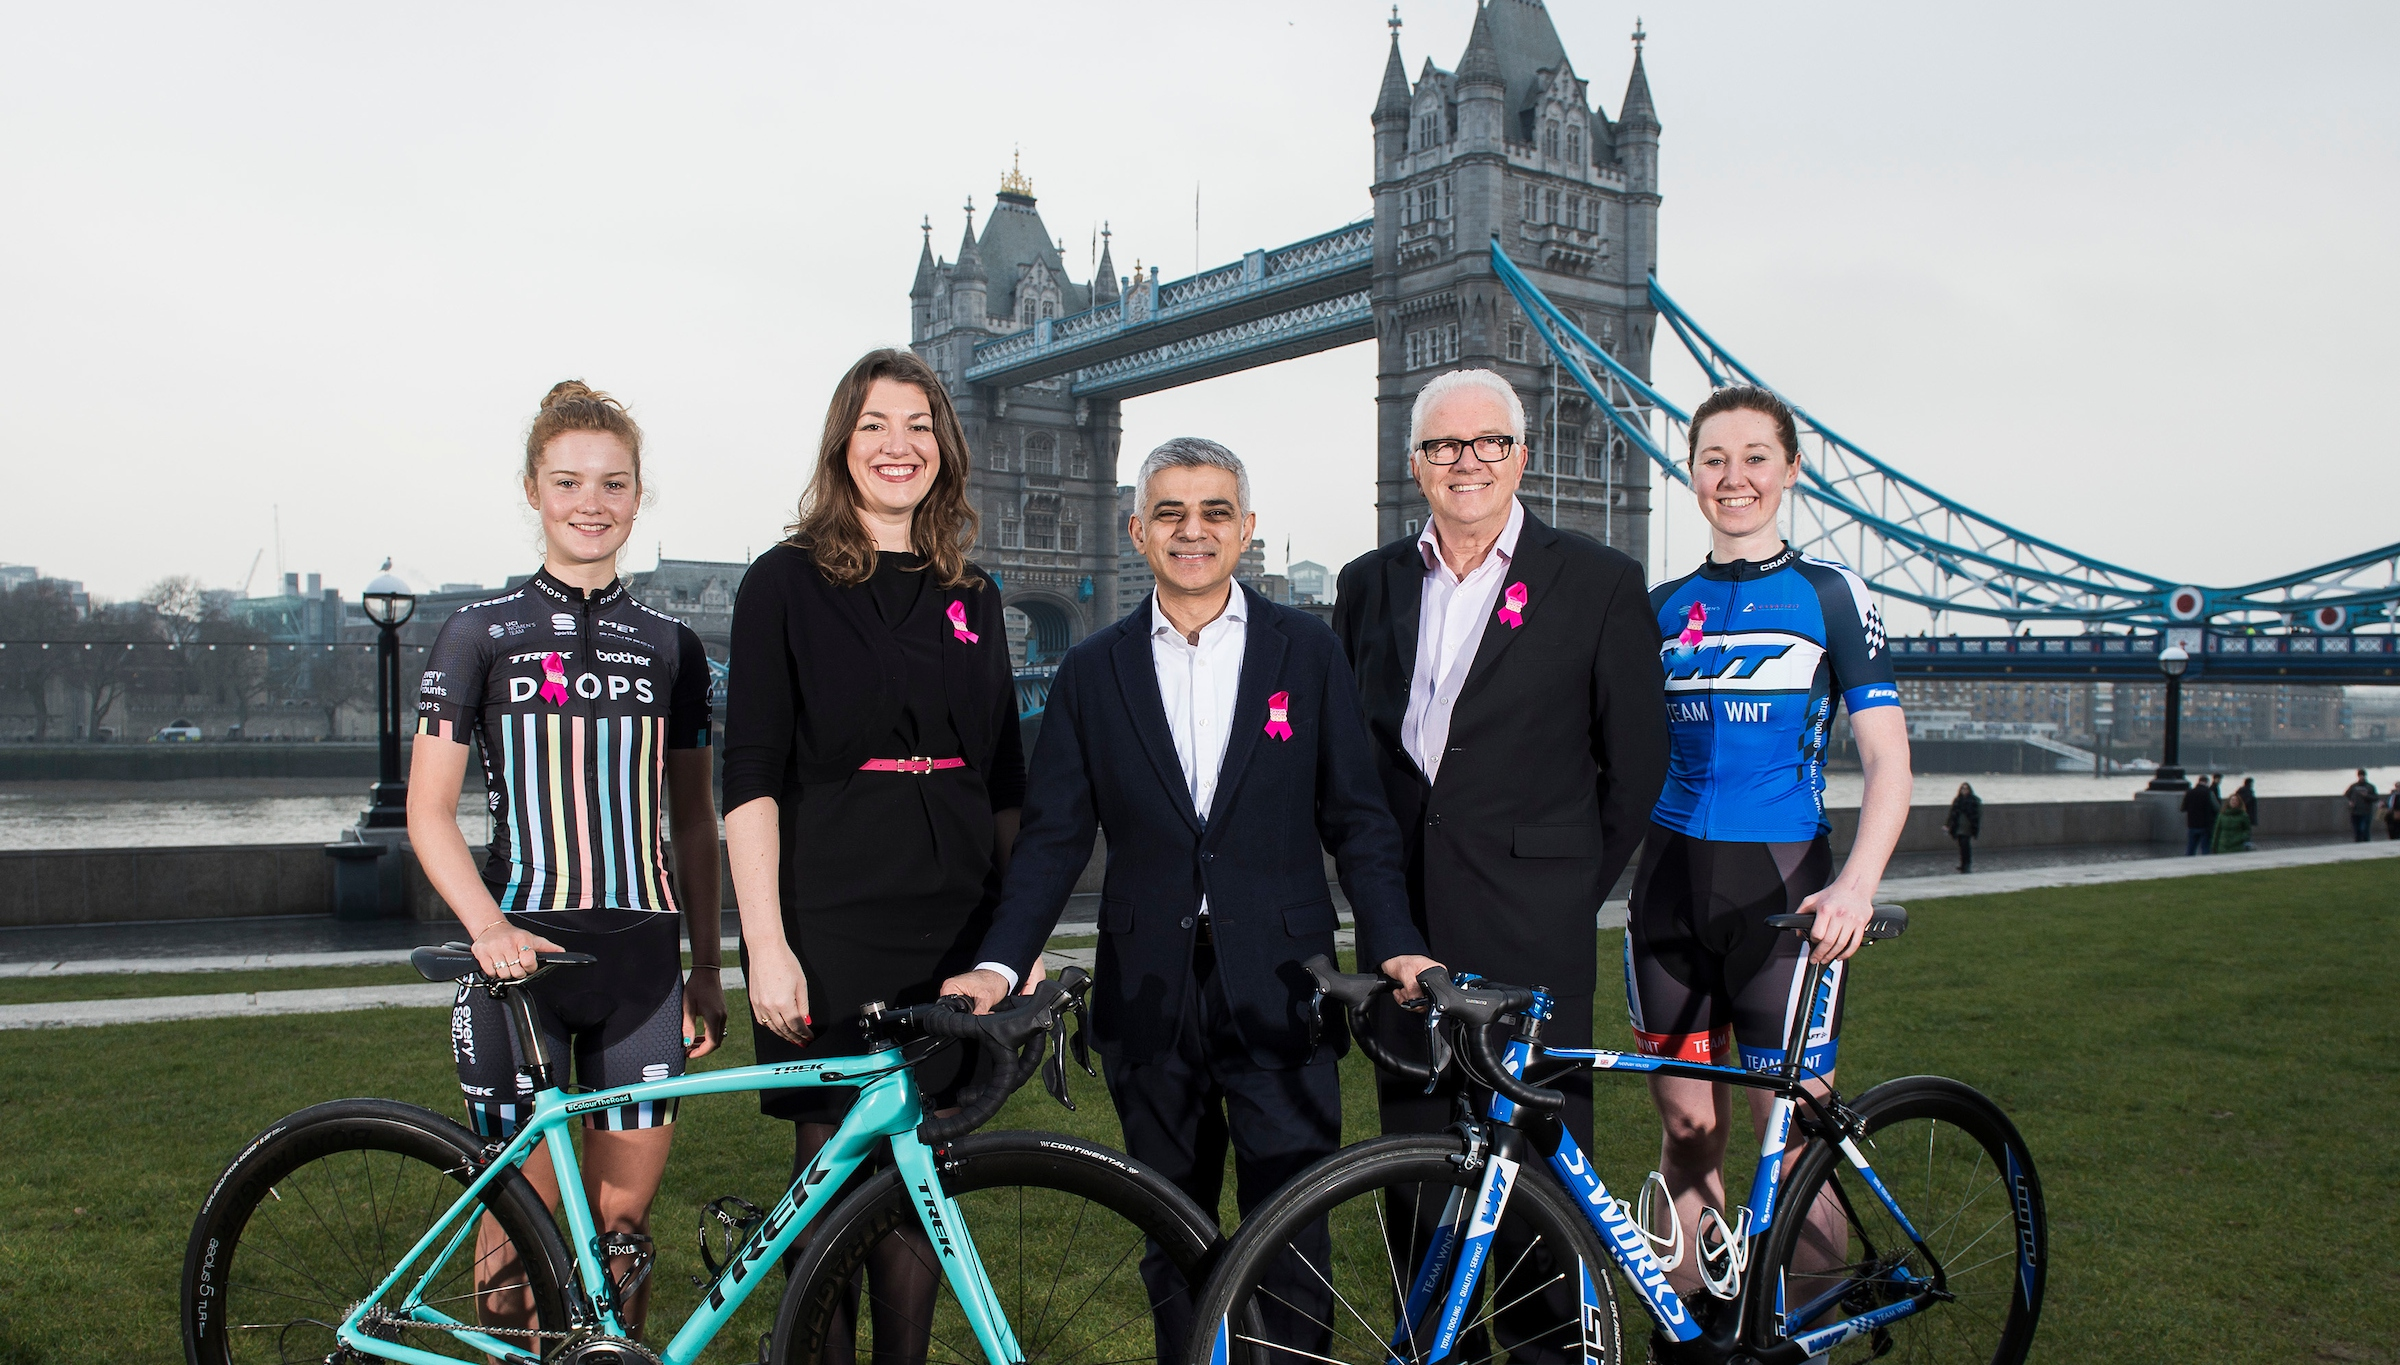 Spectacular Sunday London finale for The Women's Tour in 2017